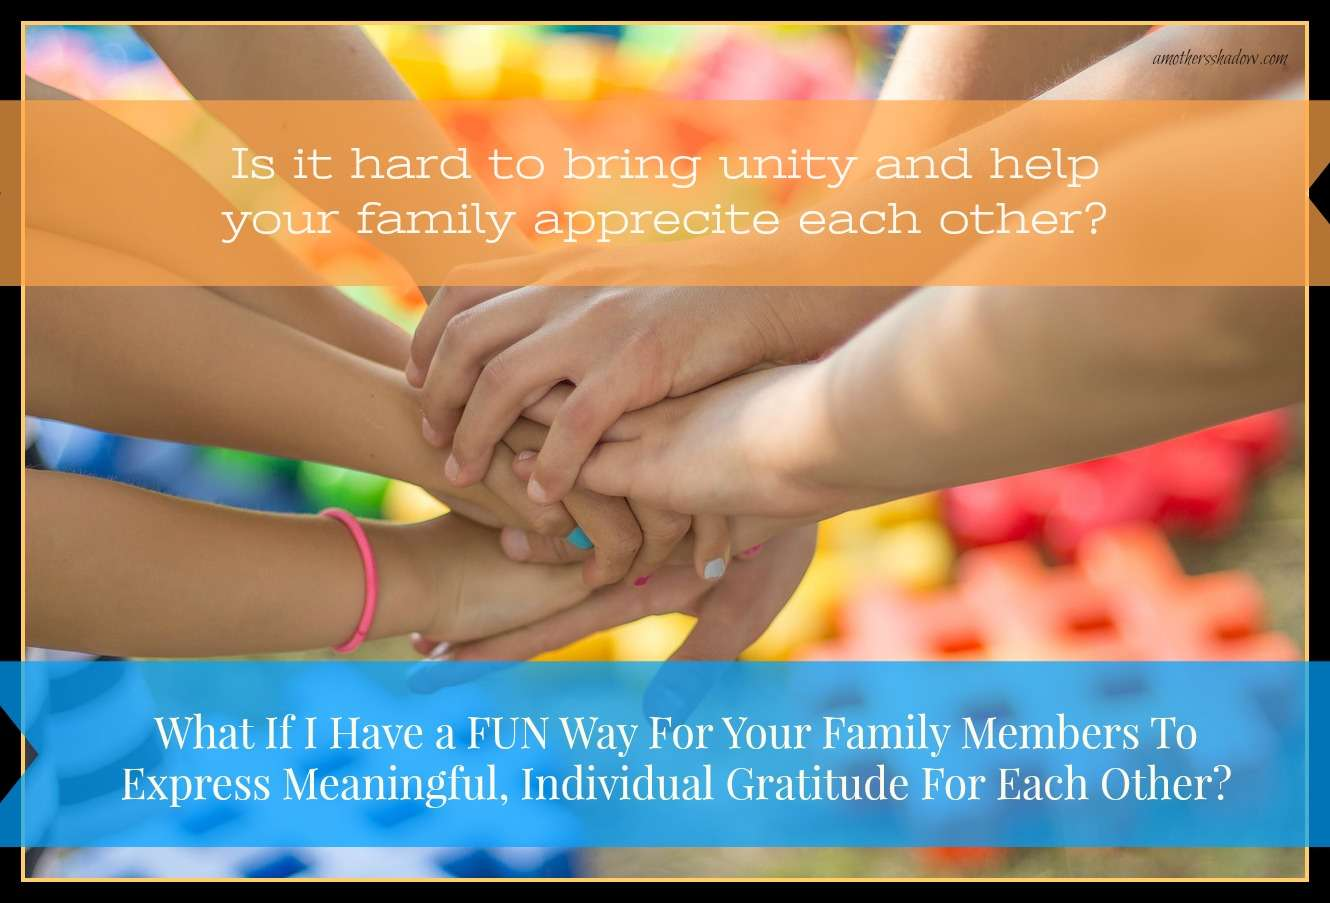 An EASY Way For Family To SHOW Gratitude for EACH OTHER